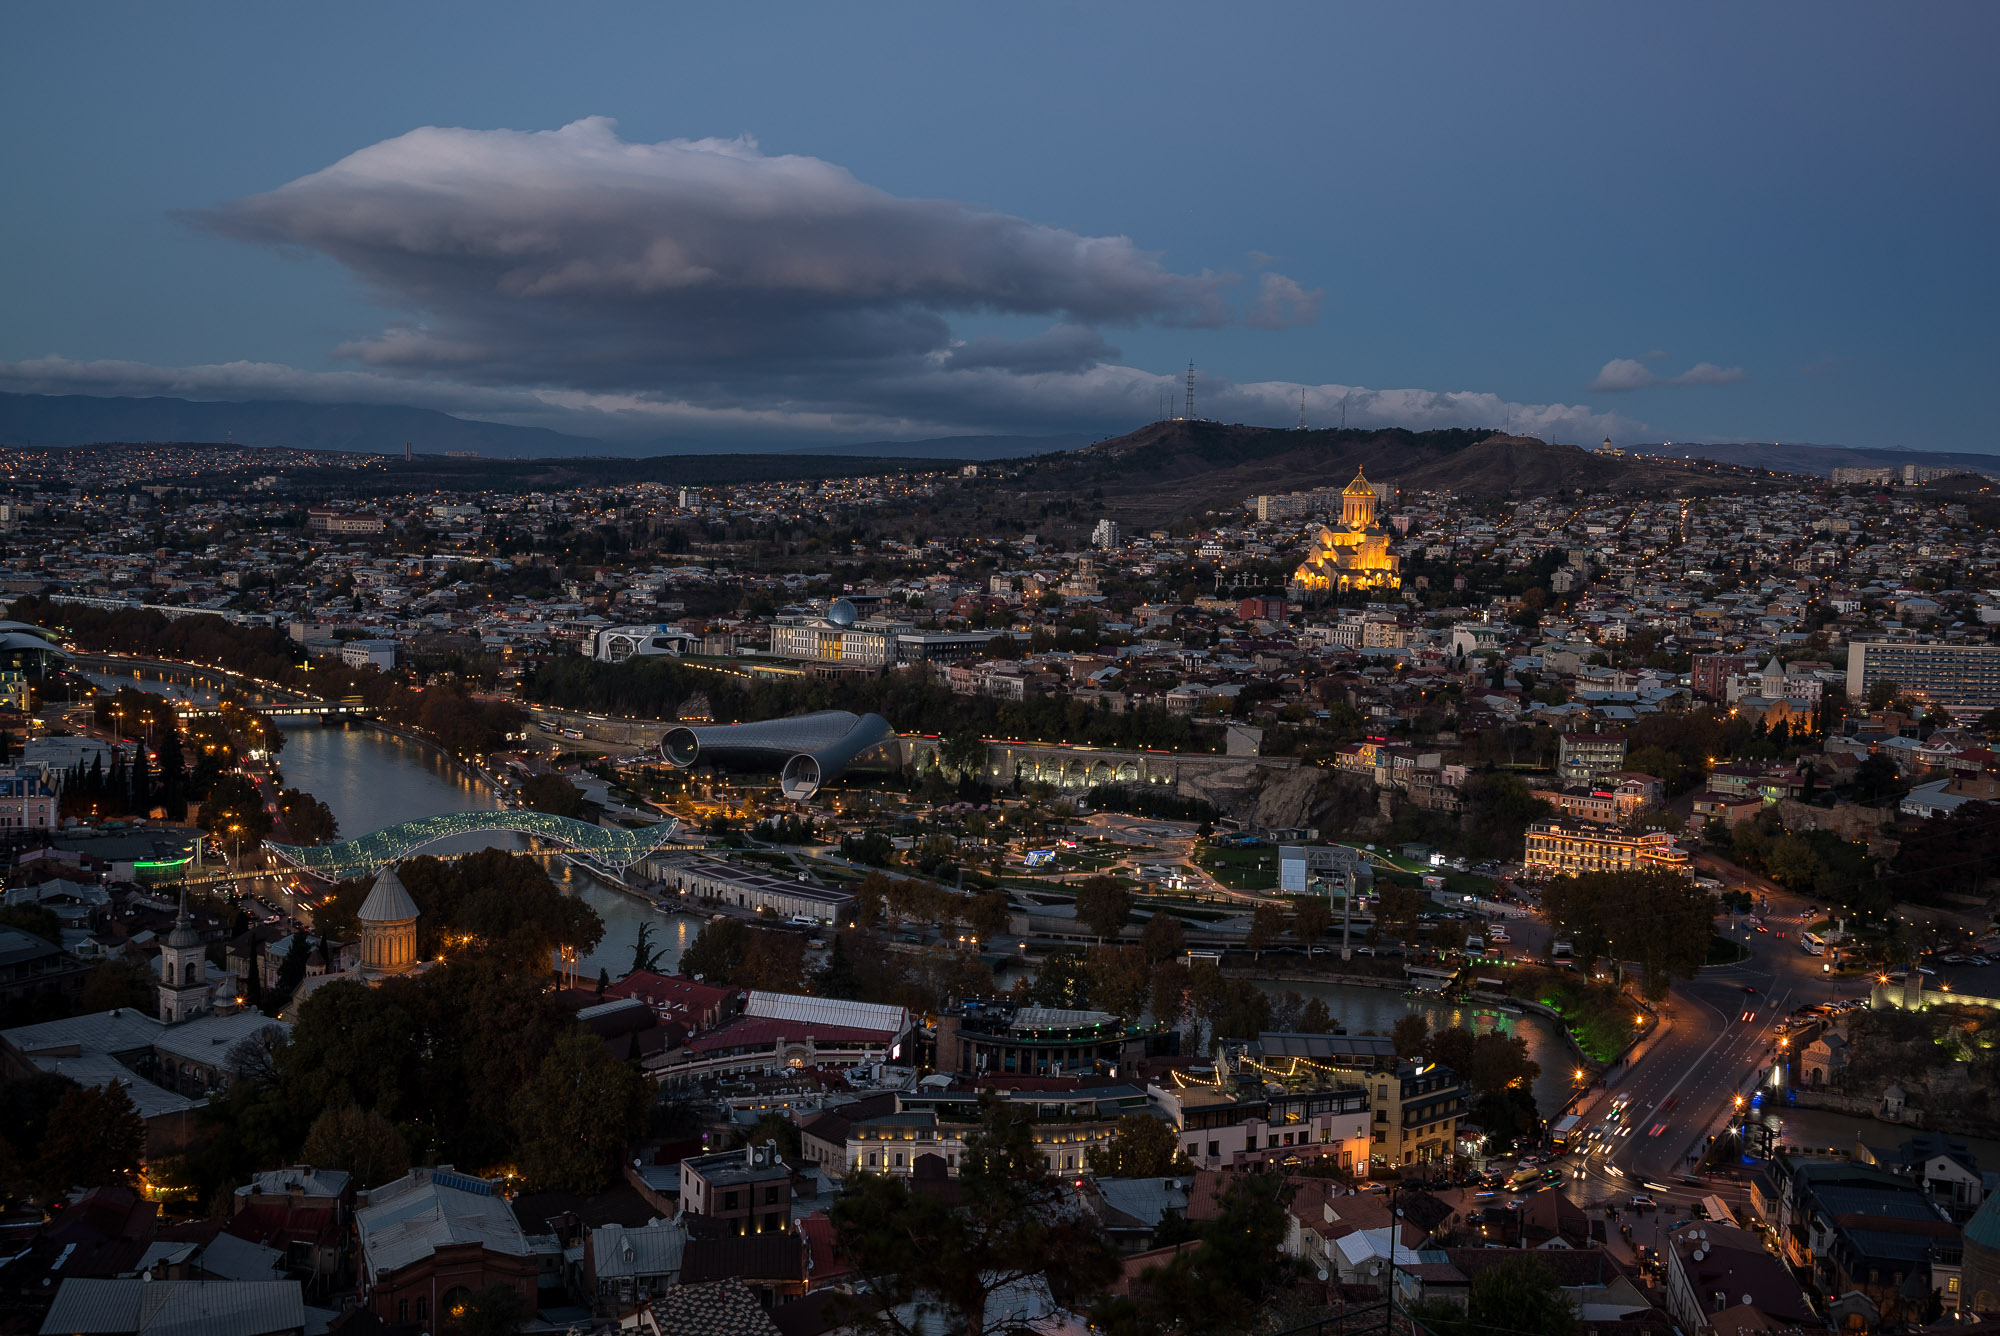 Tbilisi after nightfall